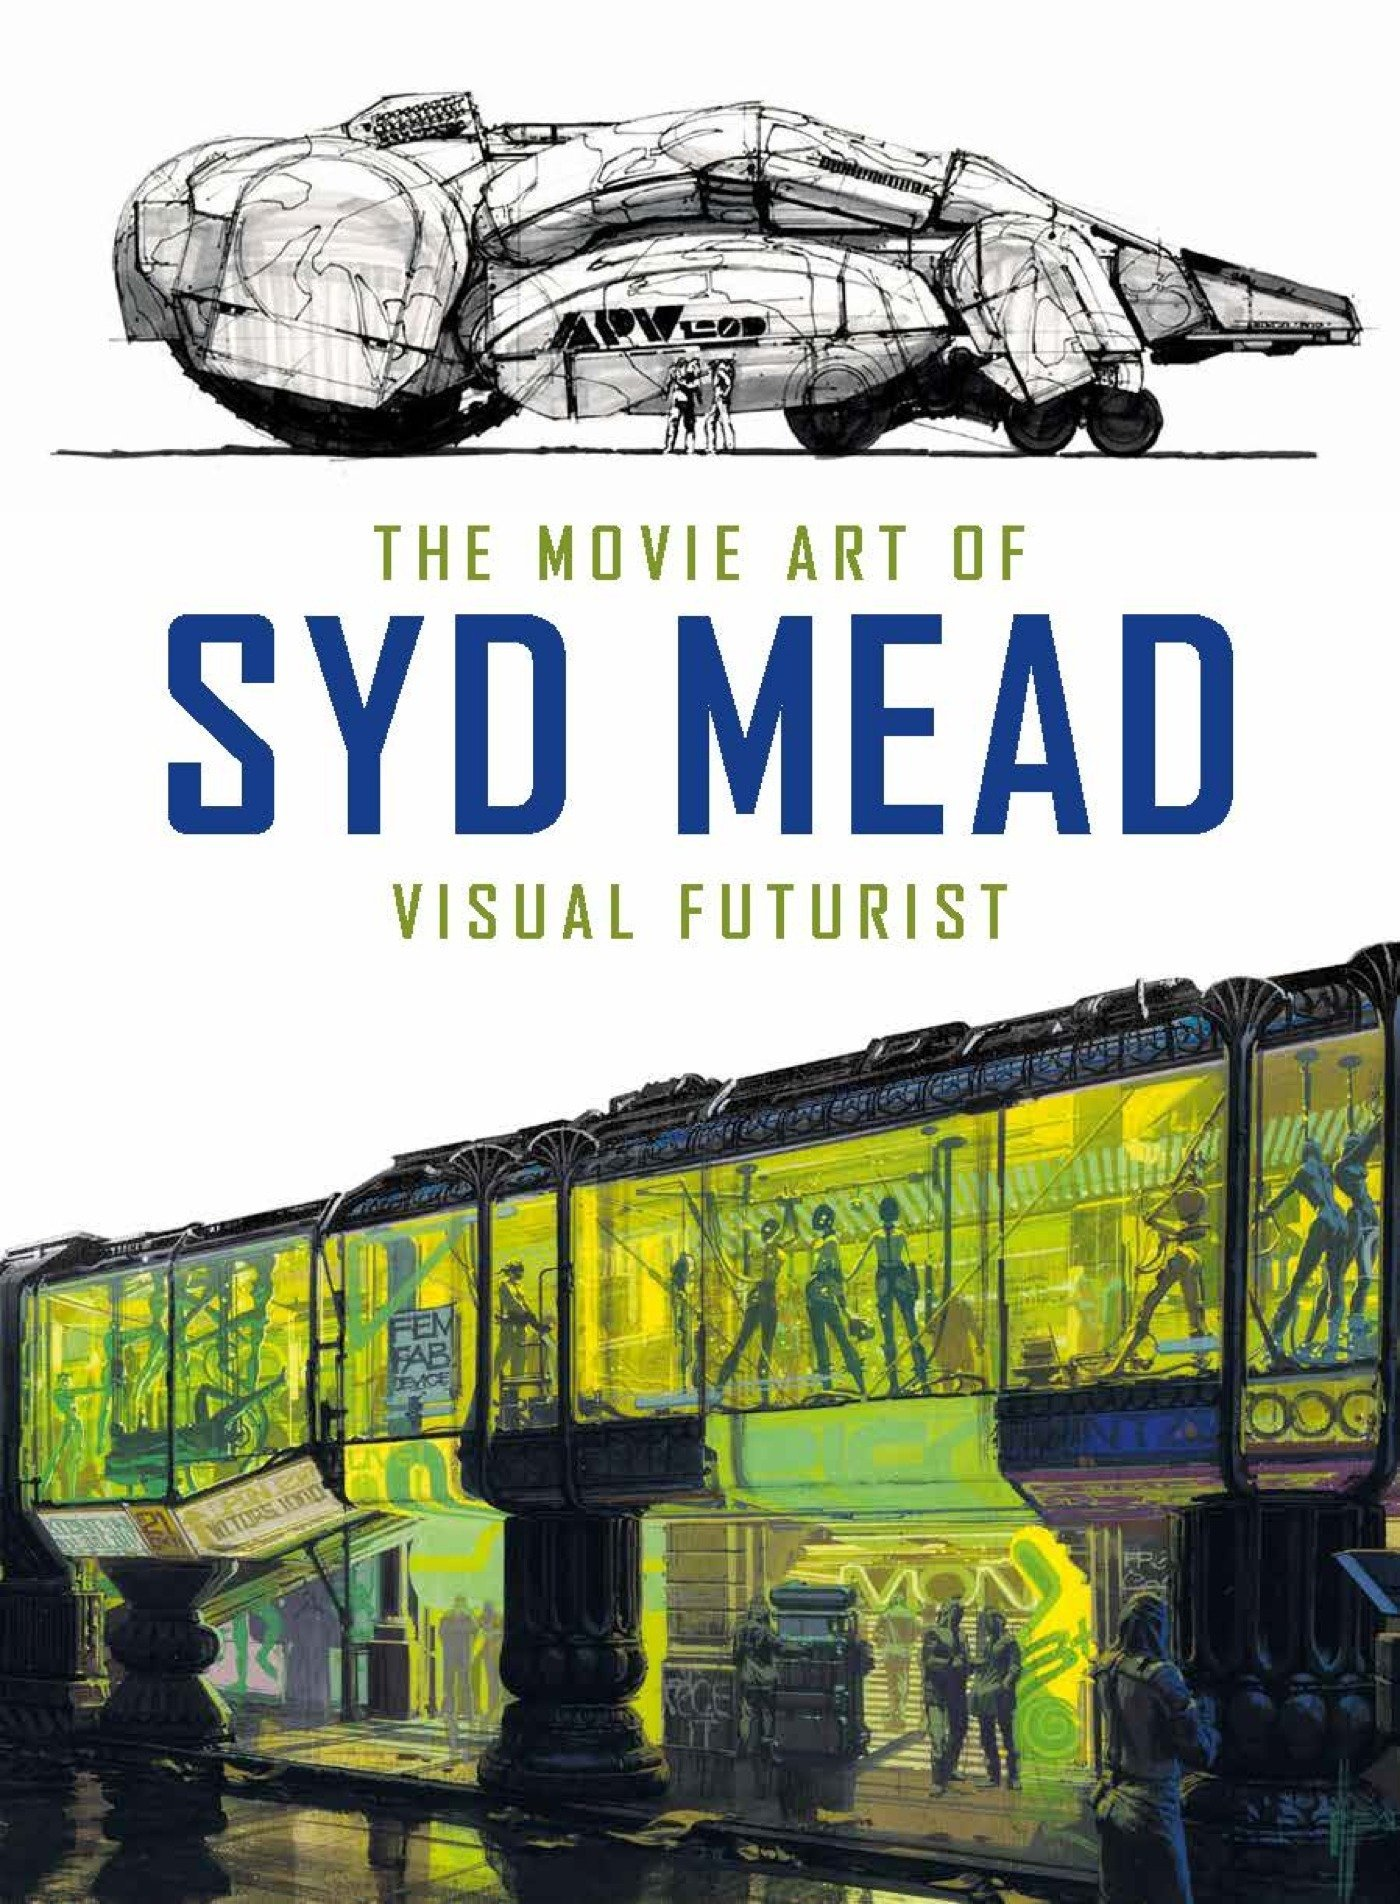 The Movie Art Of Syd Mead Visual Futurist Short Circuit Posters From Poster Shop 9781785651182 Books